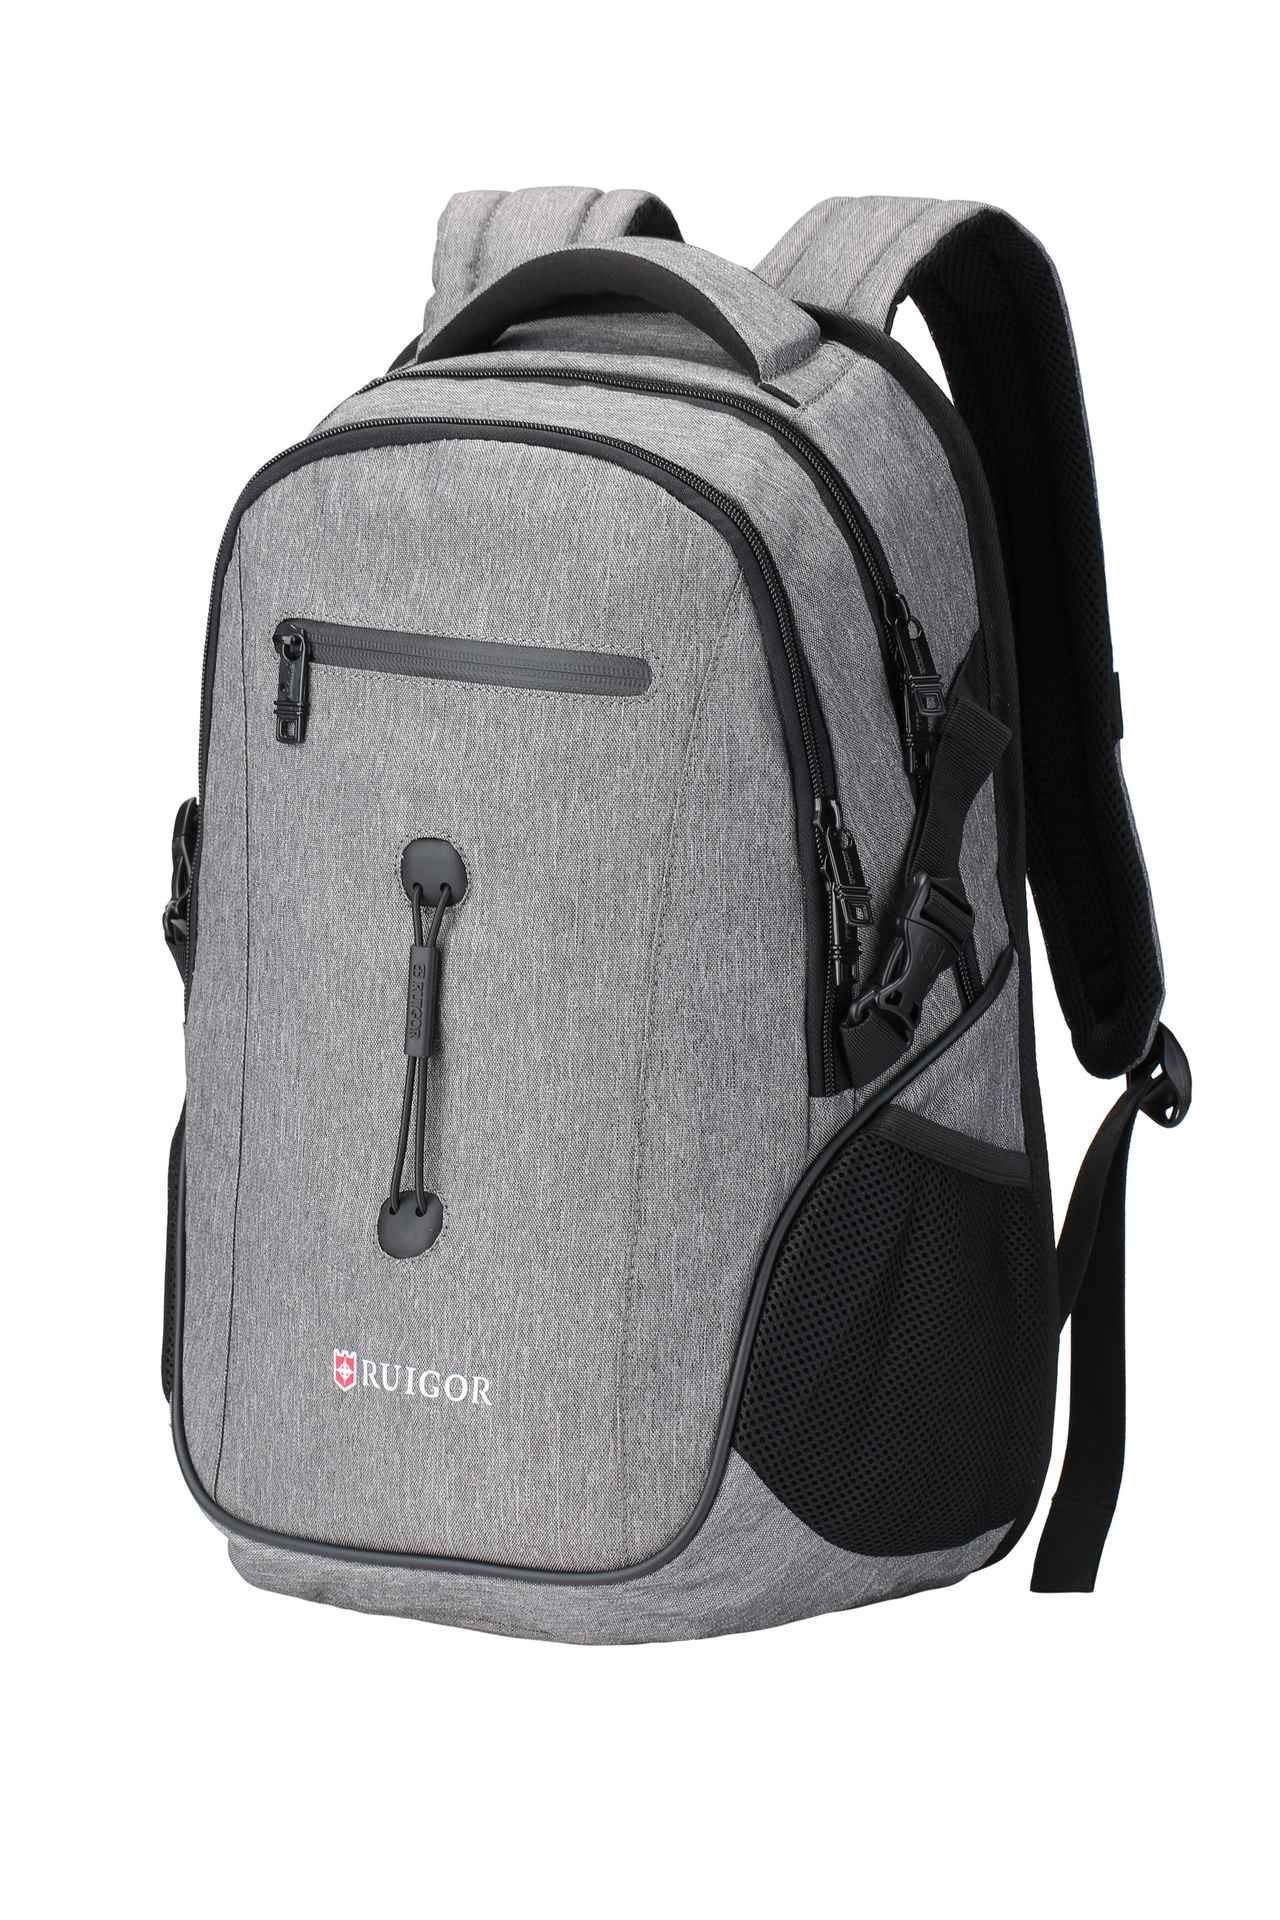 RUIGOR ACTIVE 65 Laptop Backpack Gray